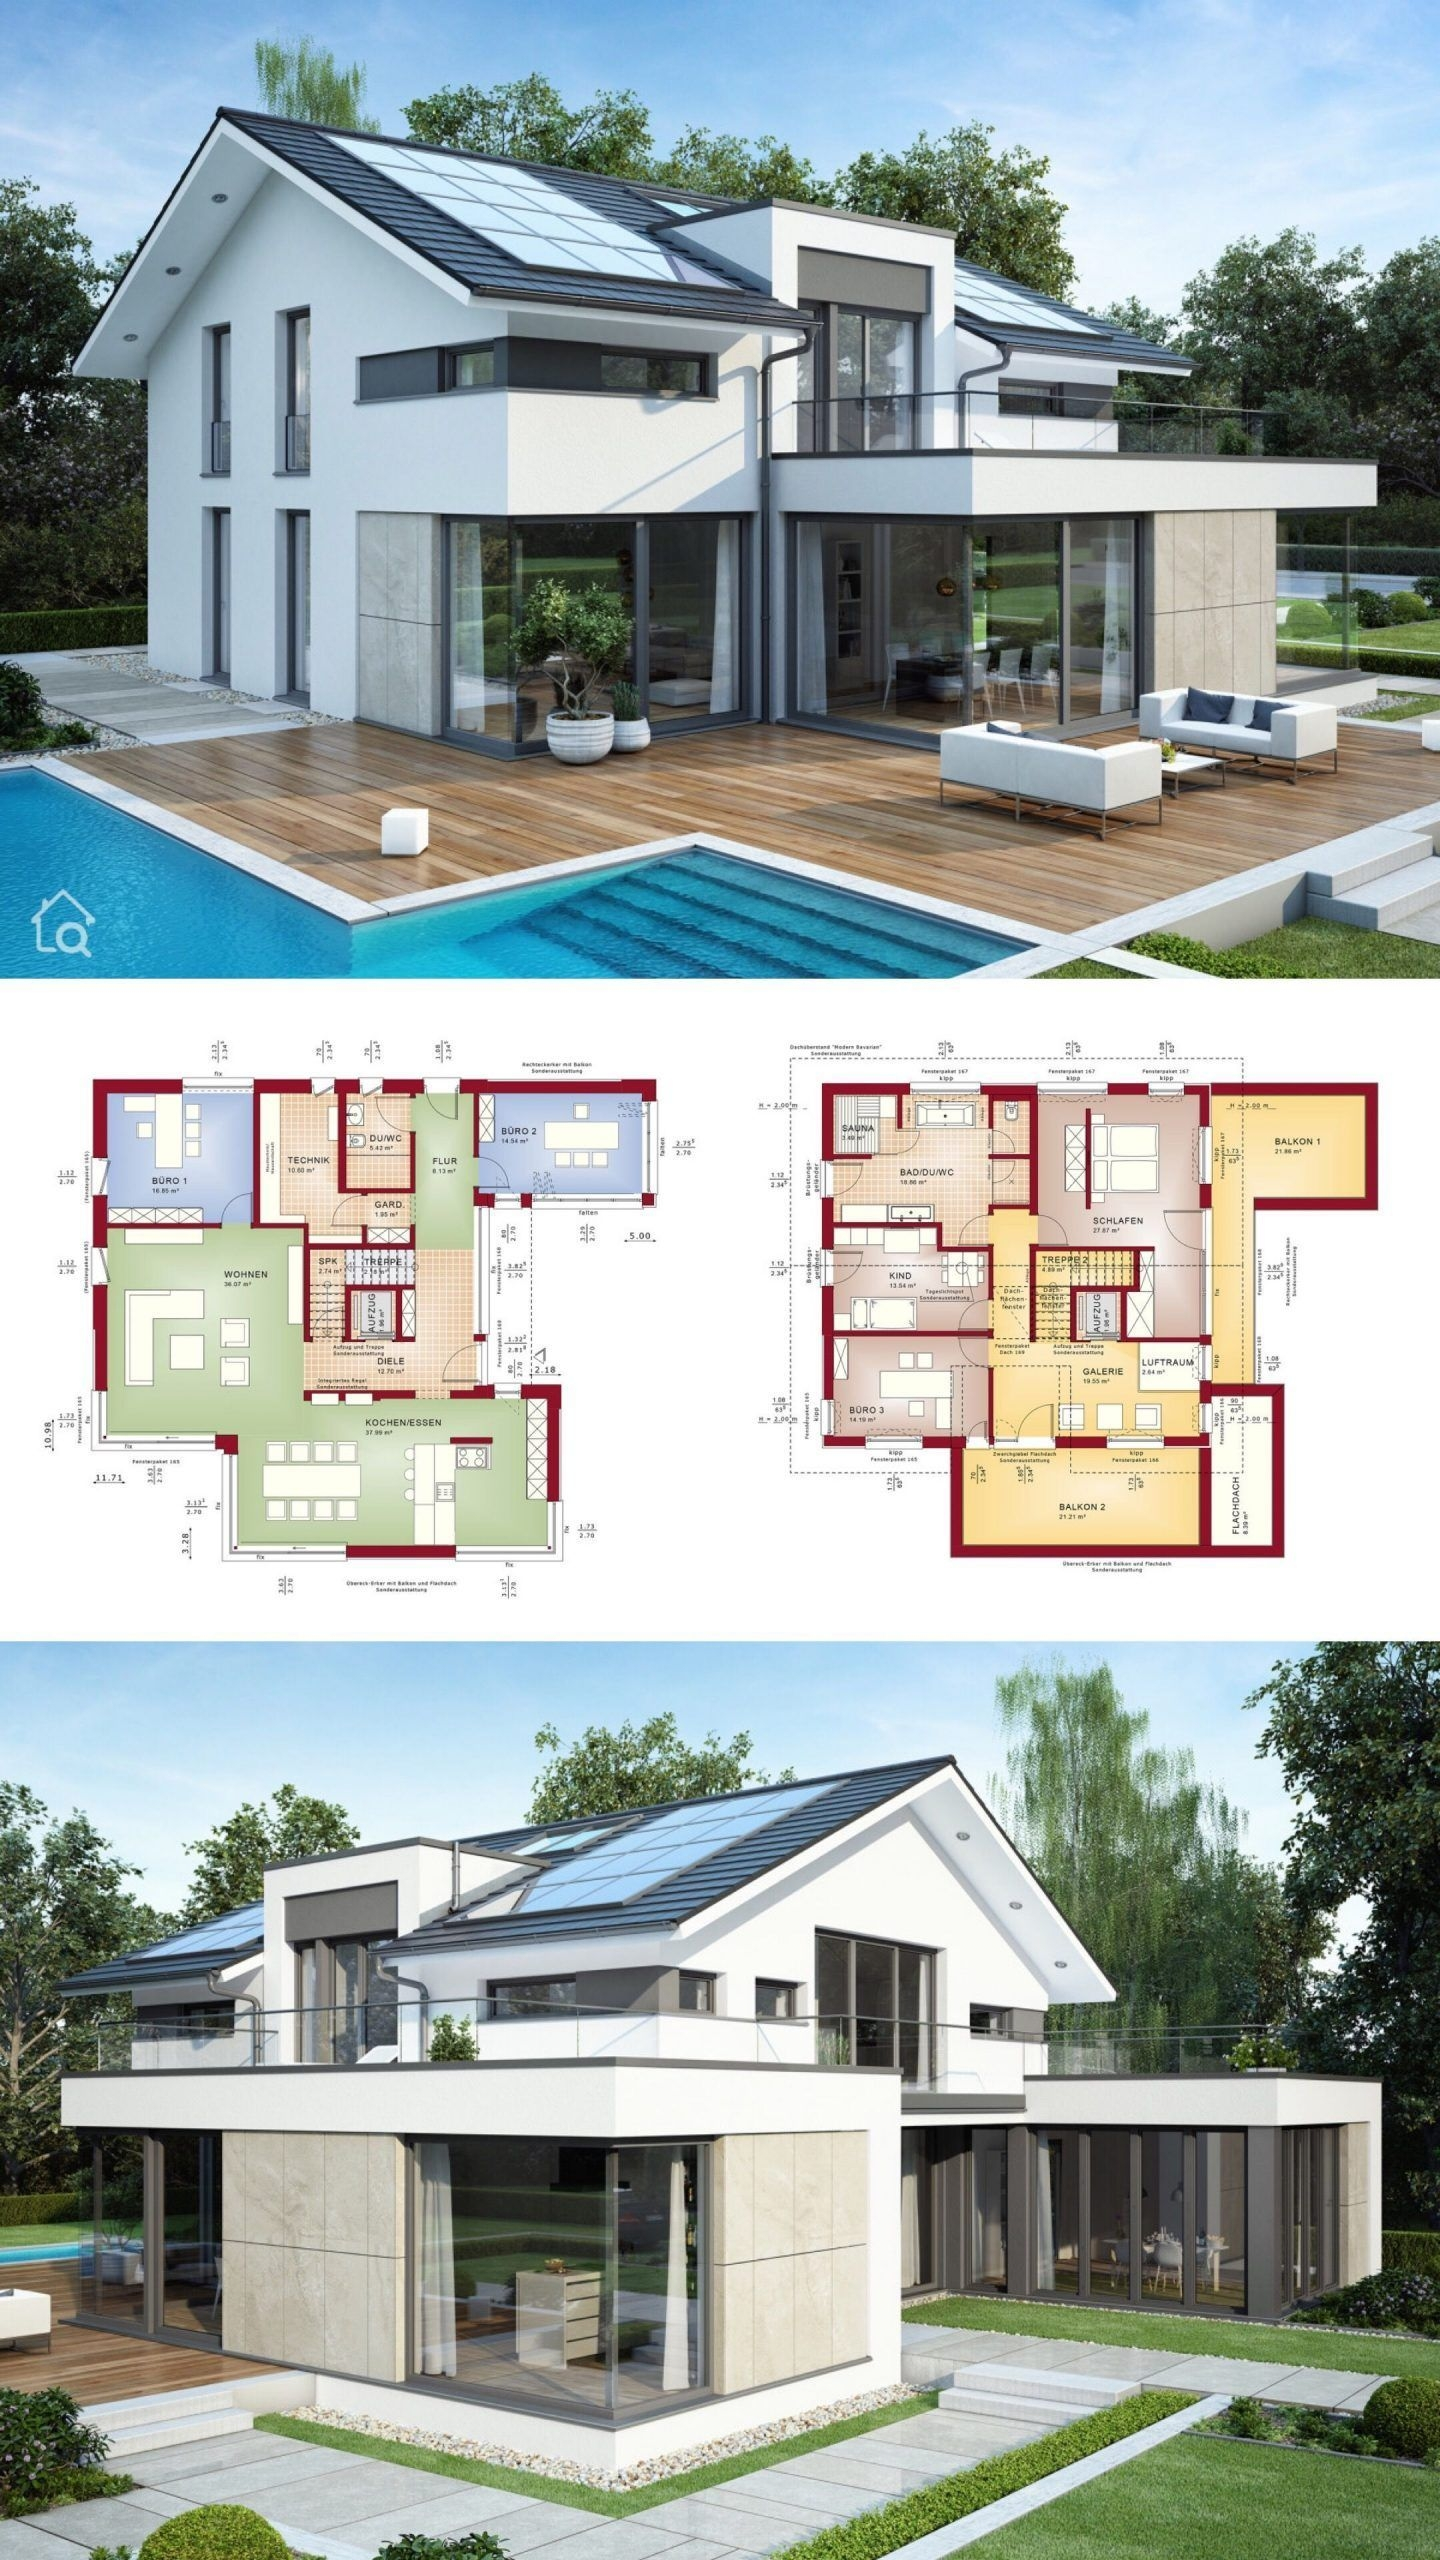 2d4f7ba53fd5af62f dc30e on Modern House Designs Pictures Gallery id=1005751